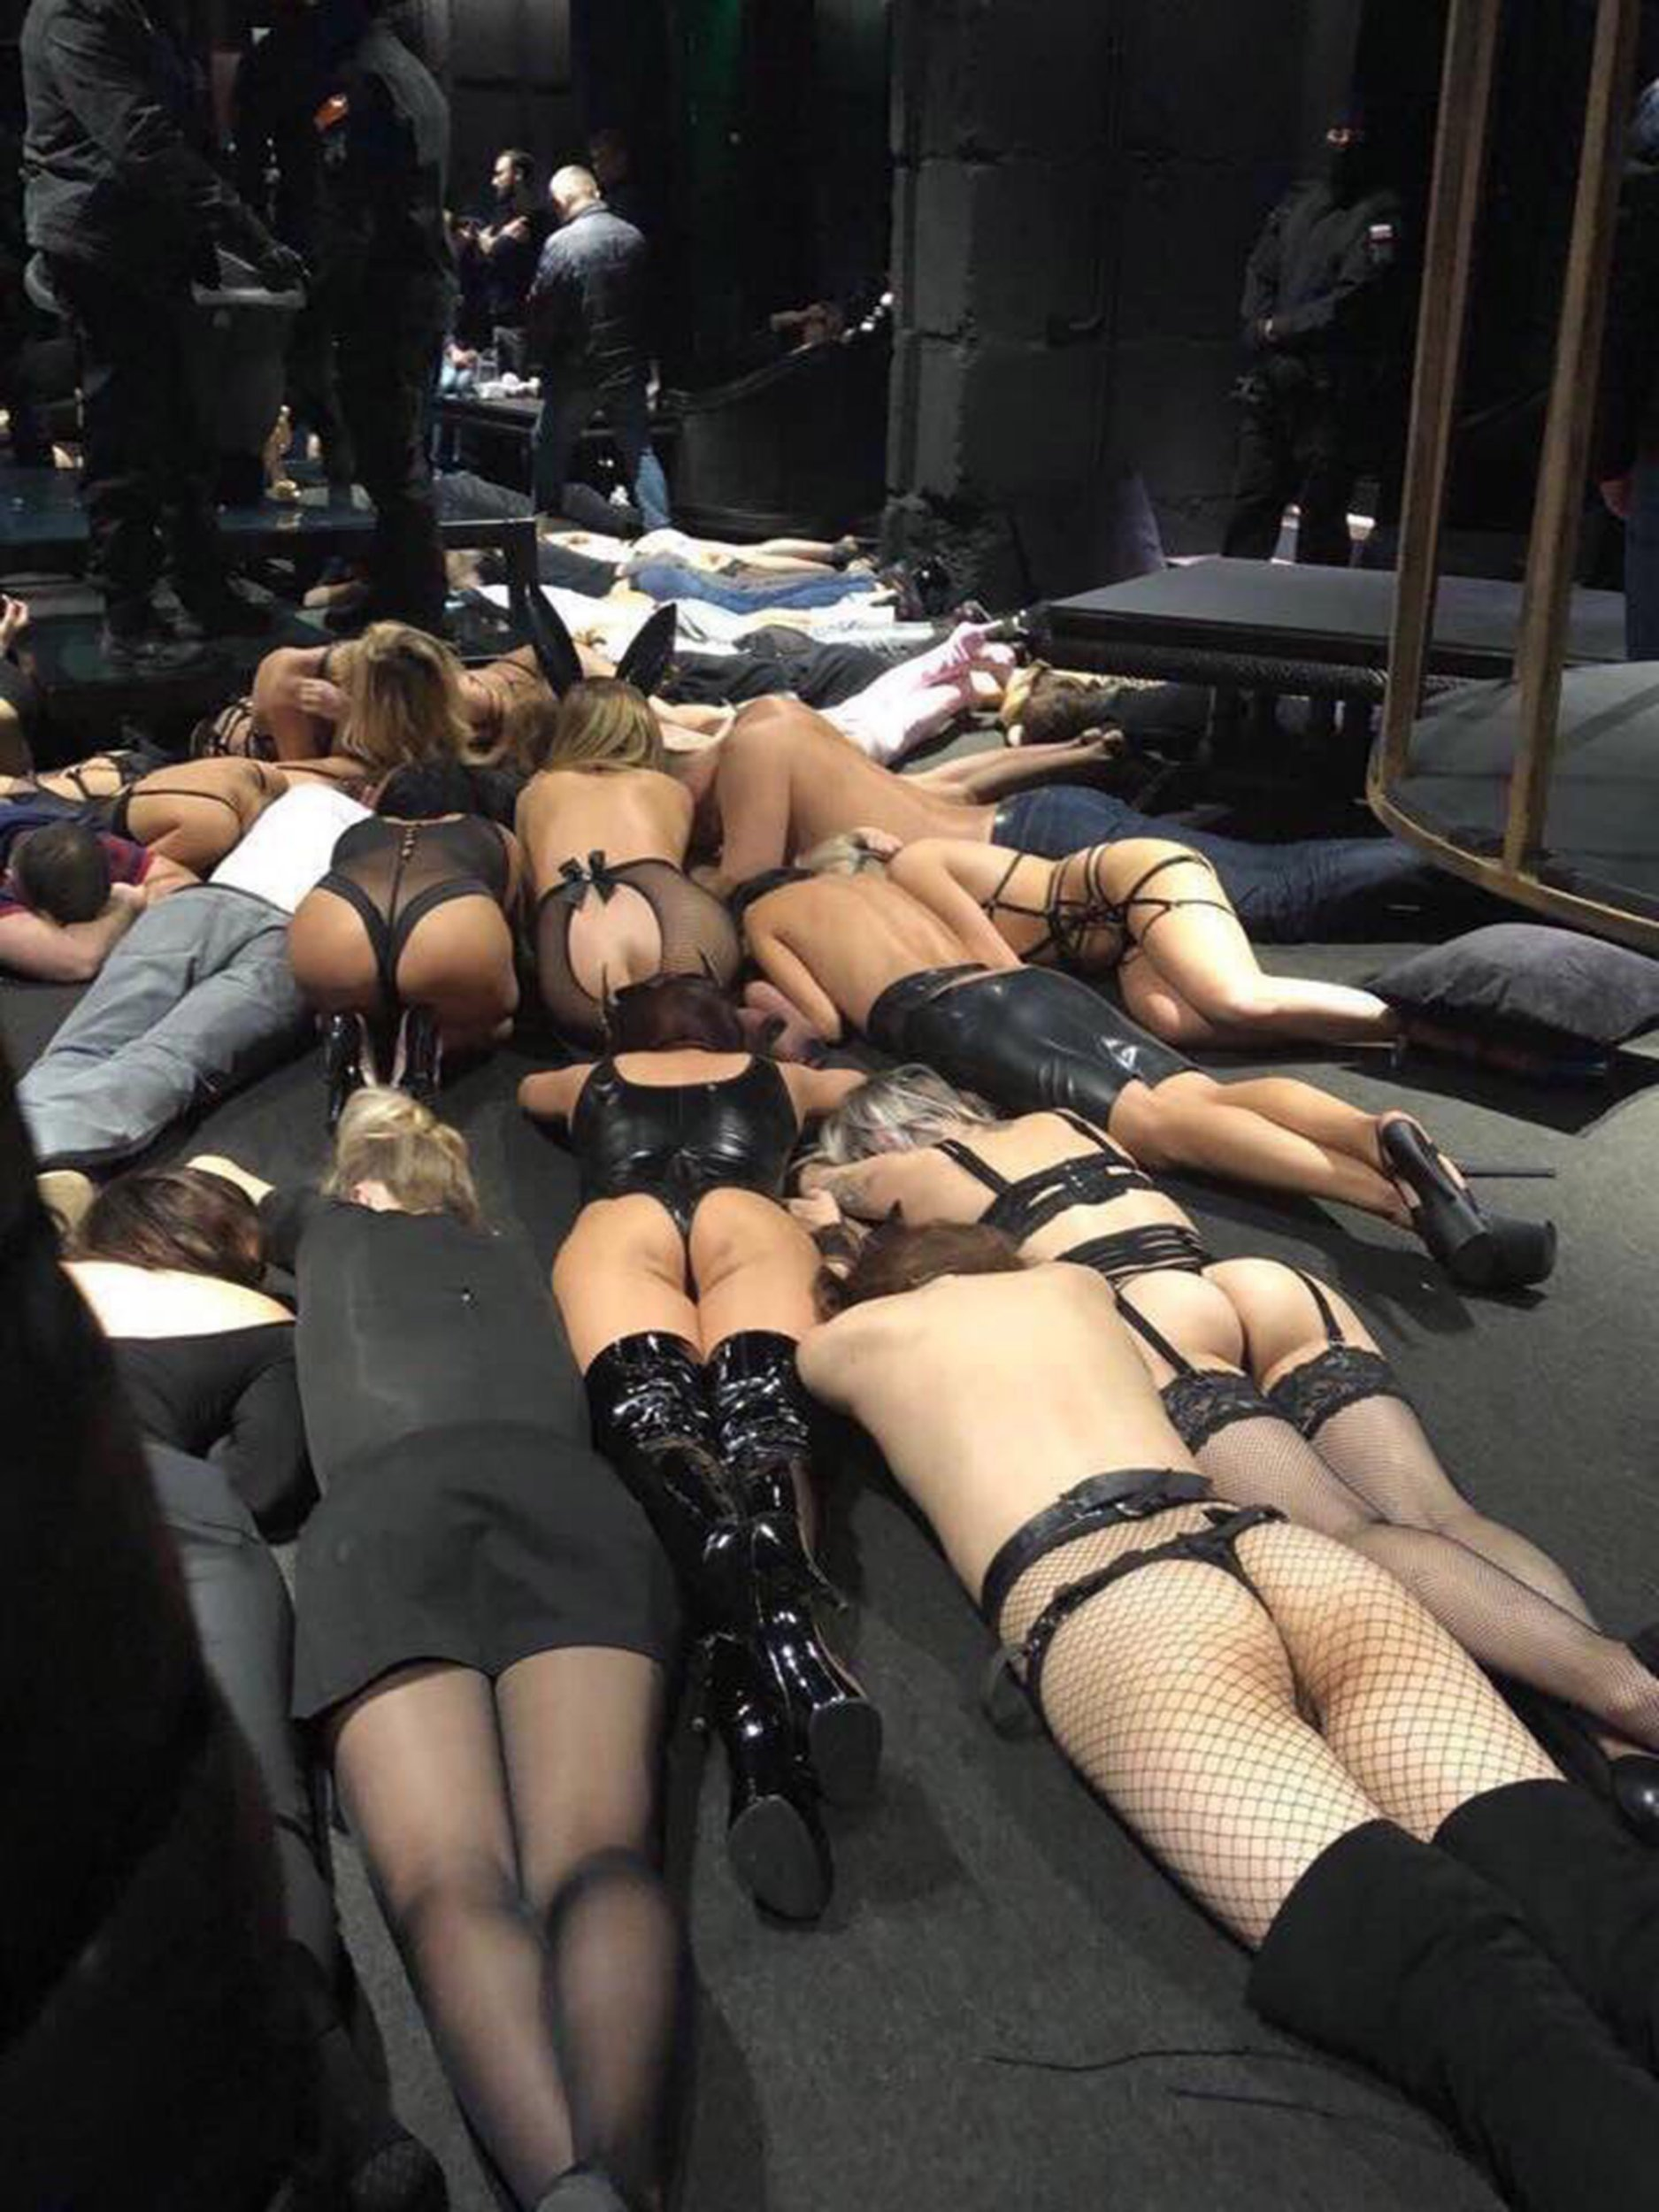 Top cop said 'it's a BDSM club, you can make it hurt' before police raid